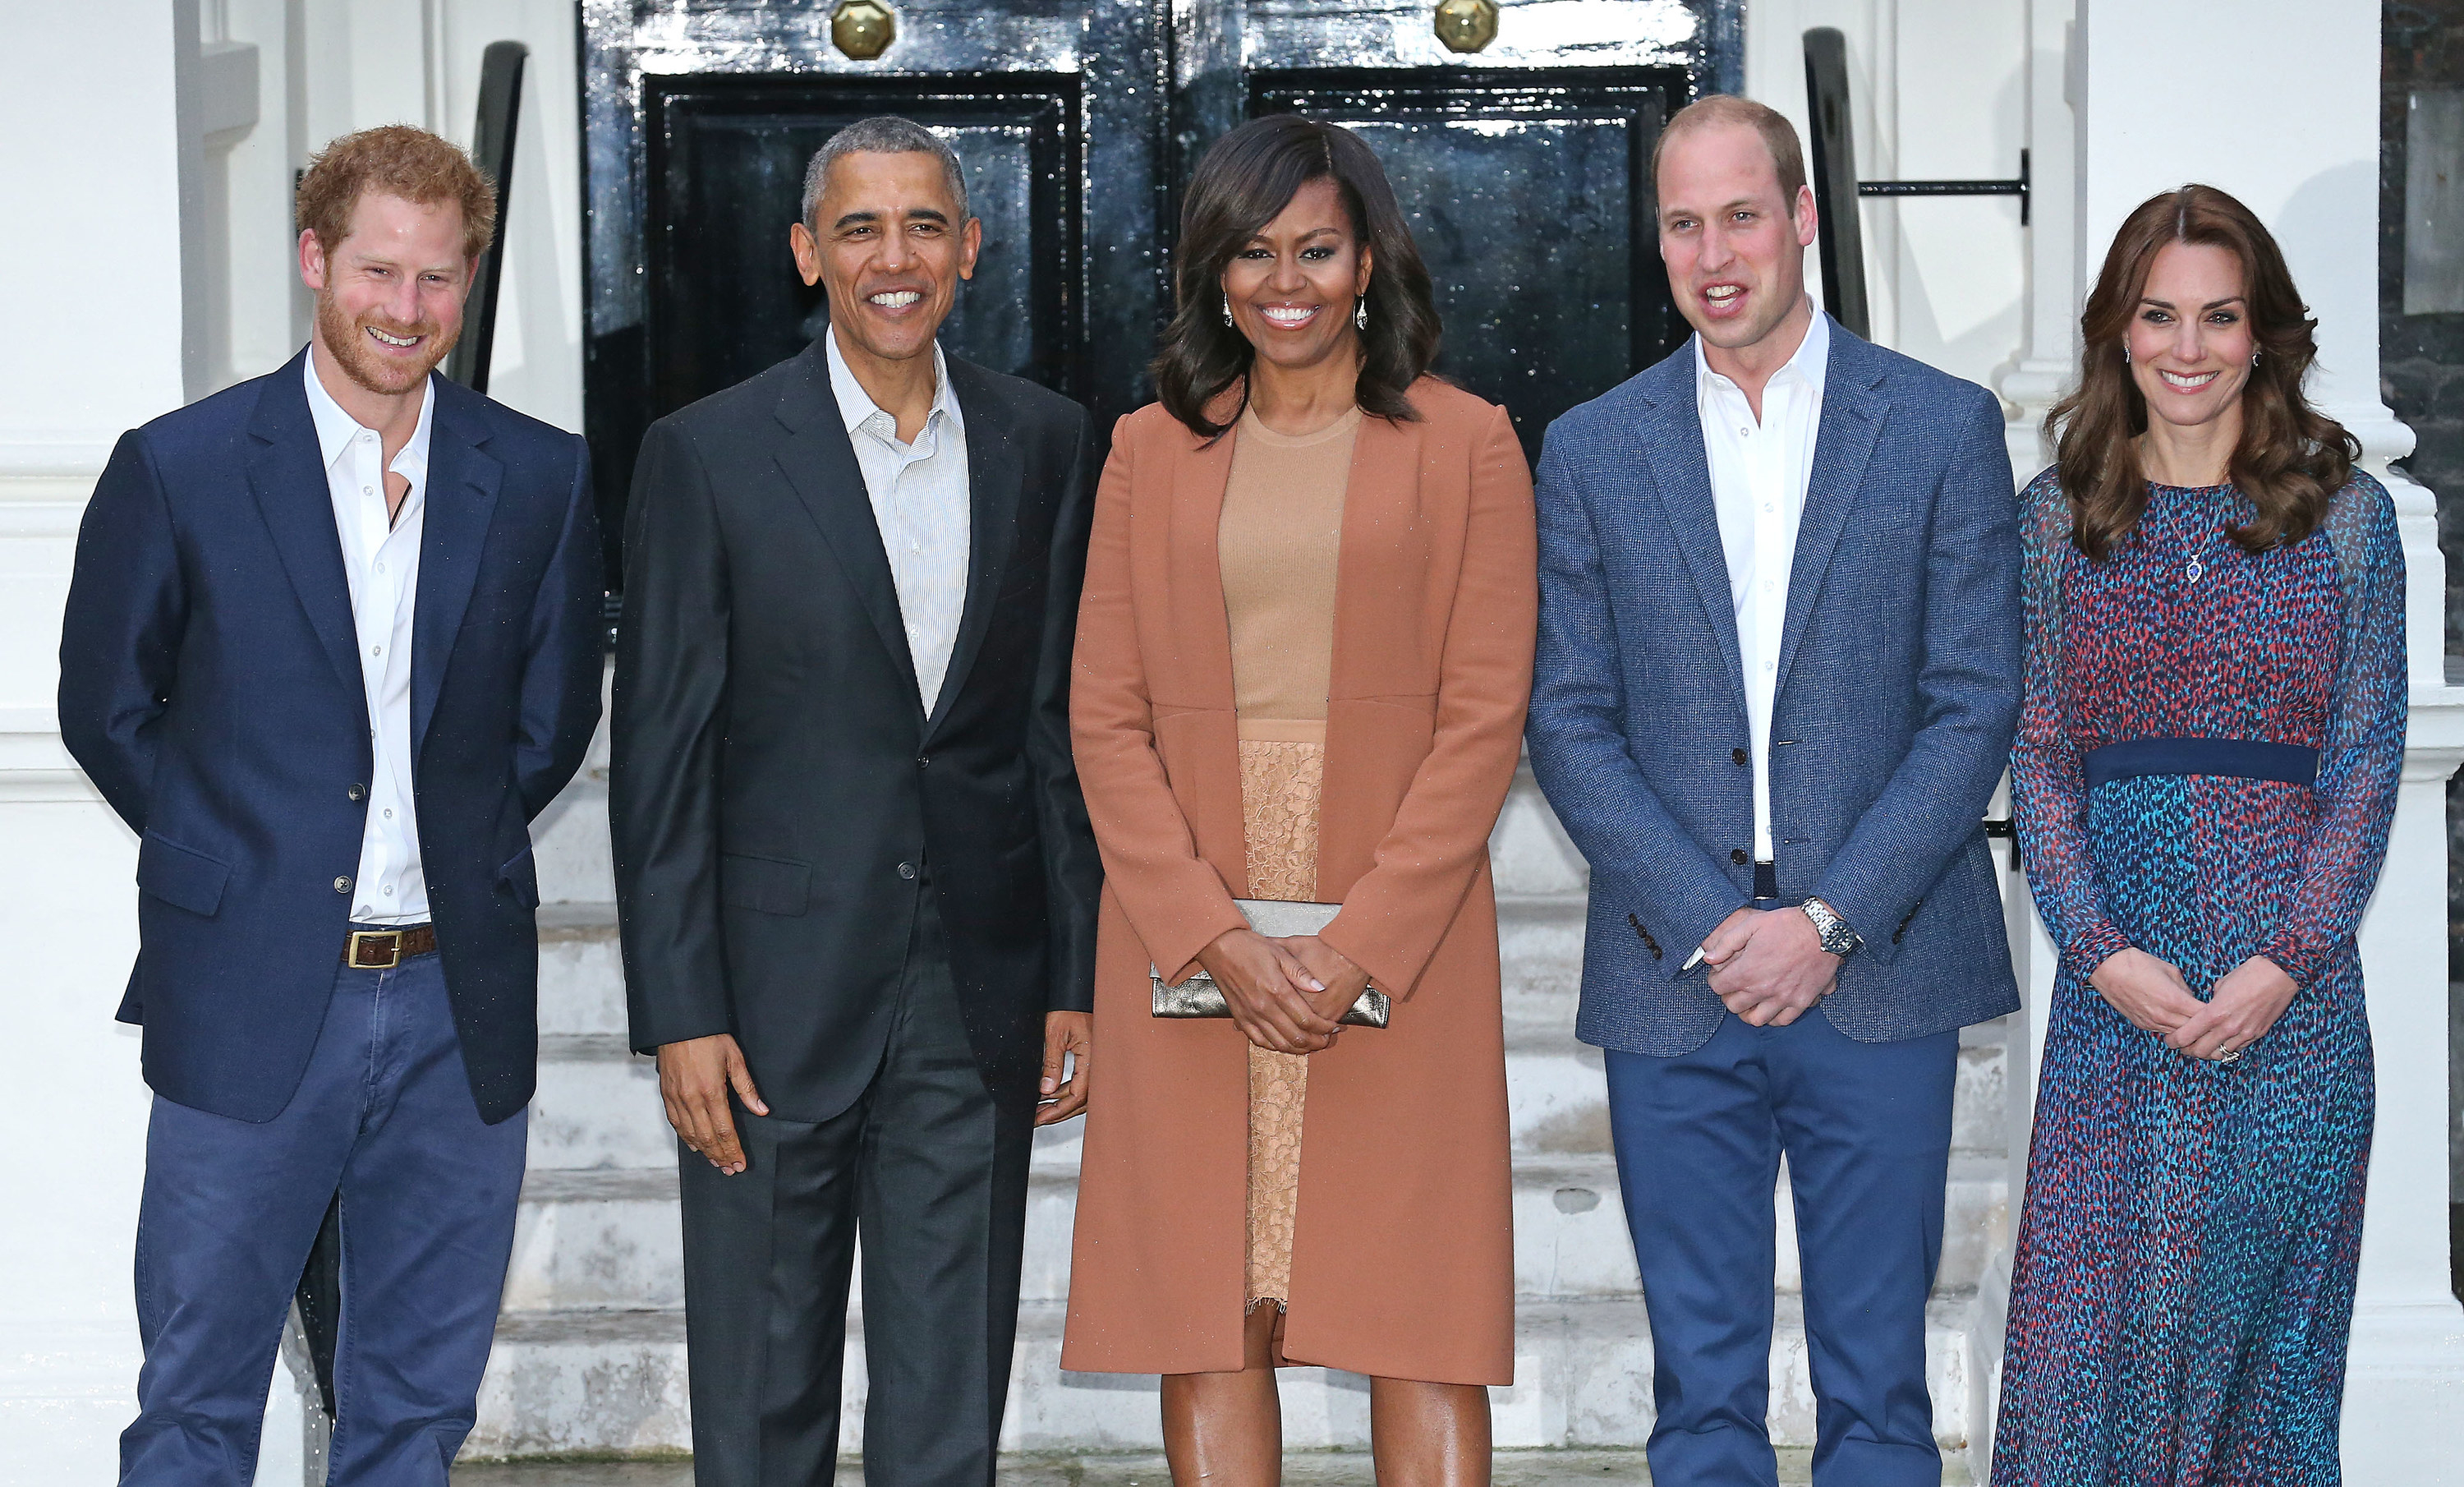 Michelle and Barack Obama stand with Harry as well as Prince William and Kate Middleton